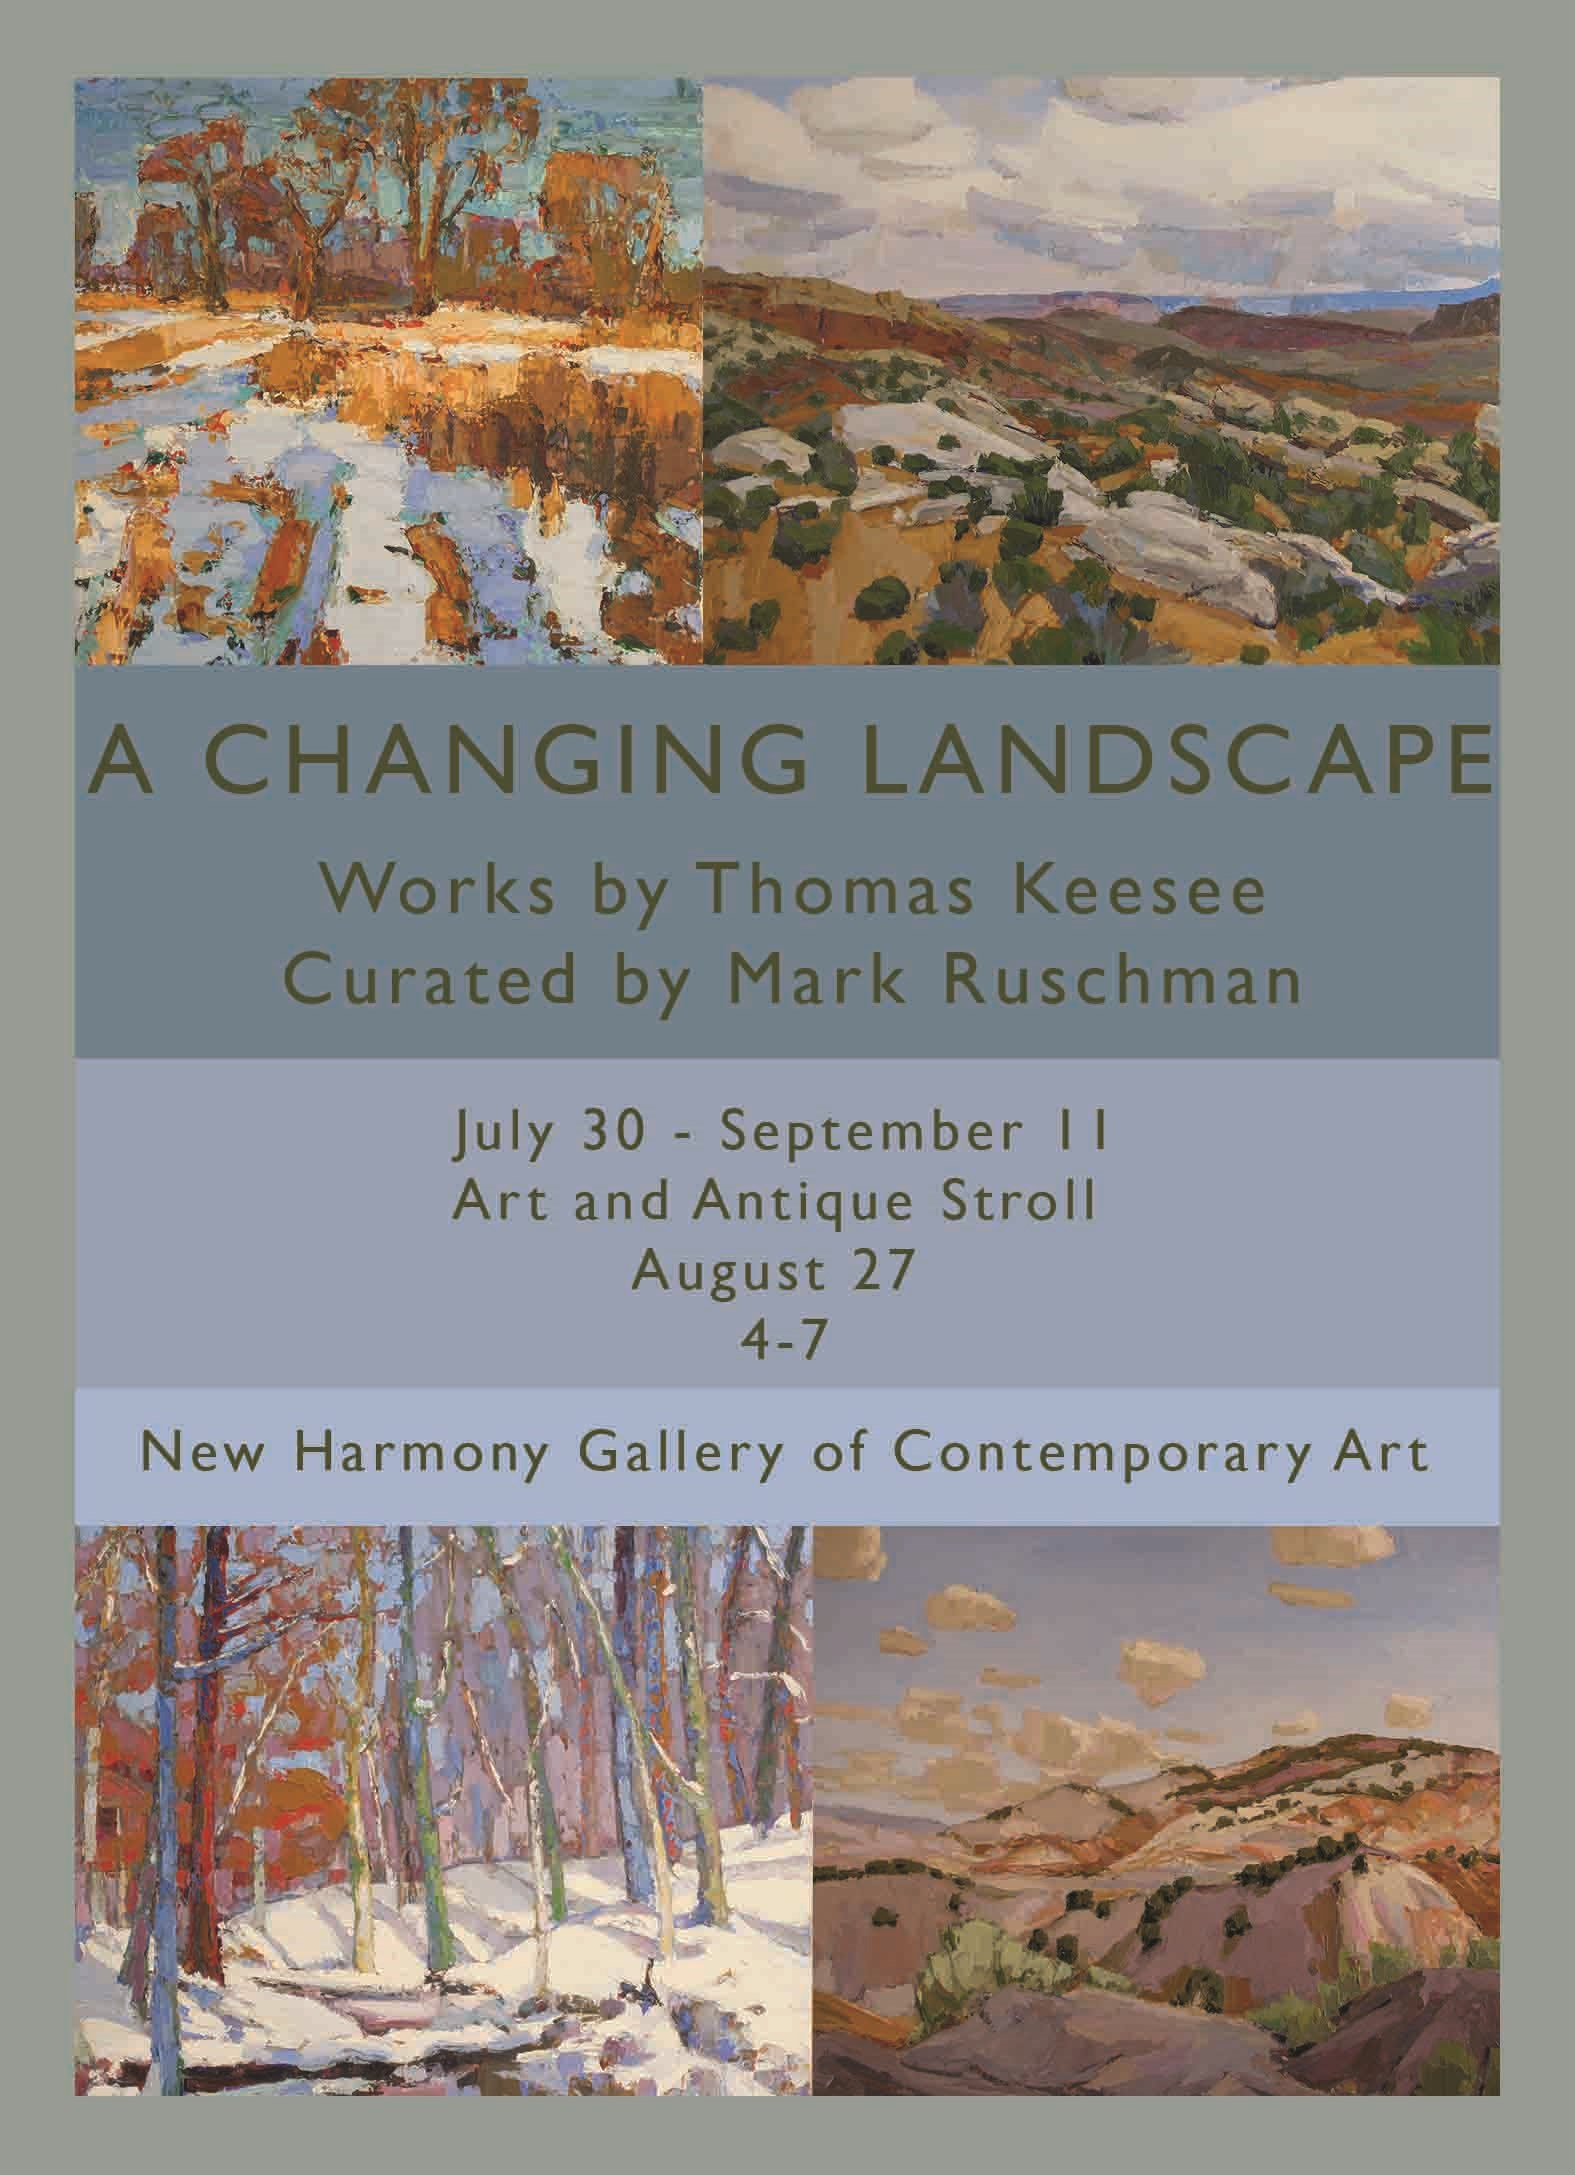 A Changing Landscape, July 30 - Septeber 11